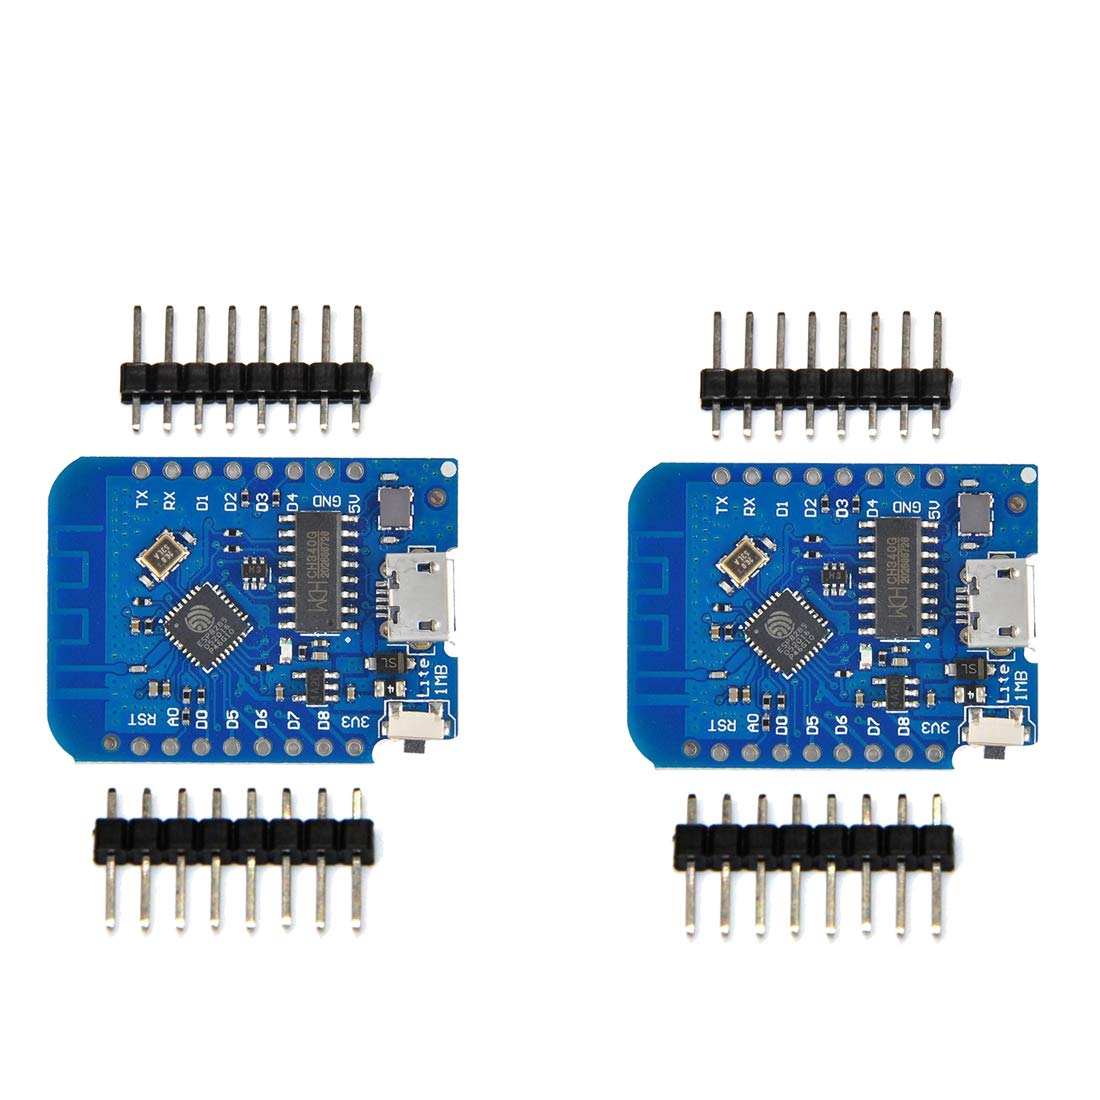 HiLetgo 2pcs Wemos D1 Mini Development Board ESP8285 V1.0.0 1MB Flash Lite Wireless WiFi Internet Development Board Wemos D1 Mini ESP8285